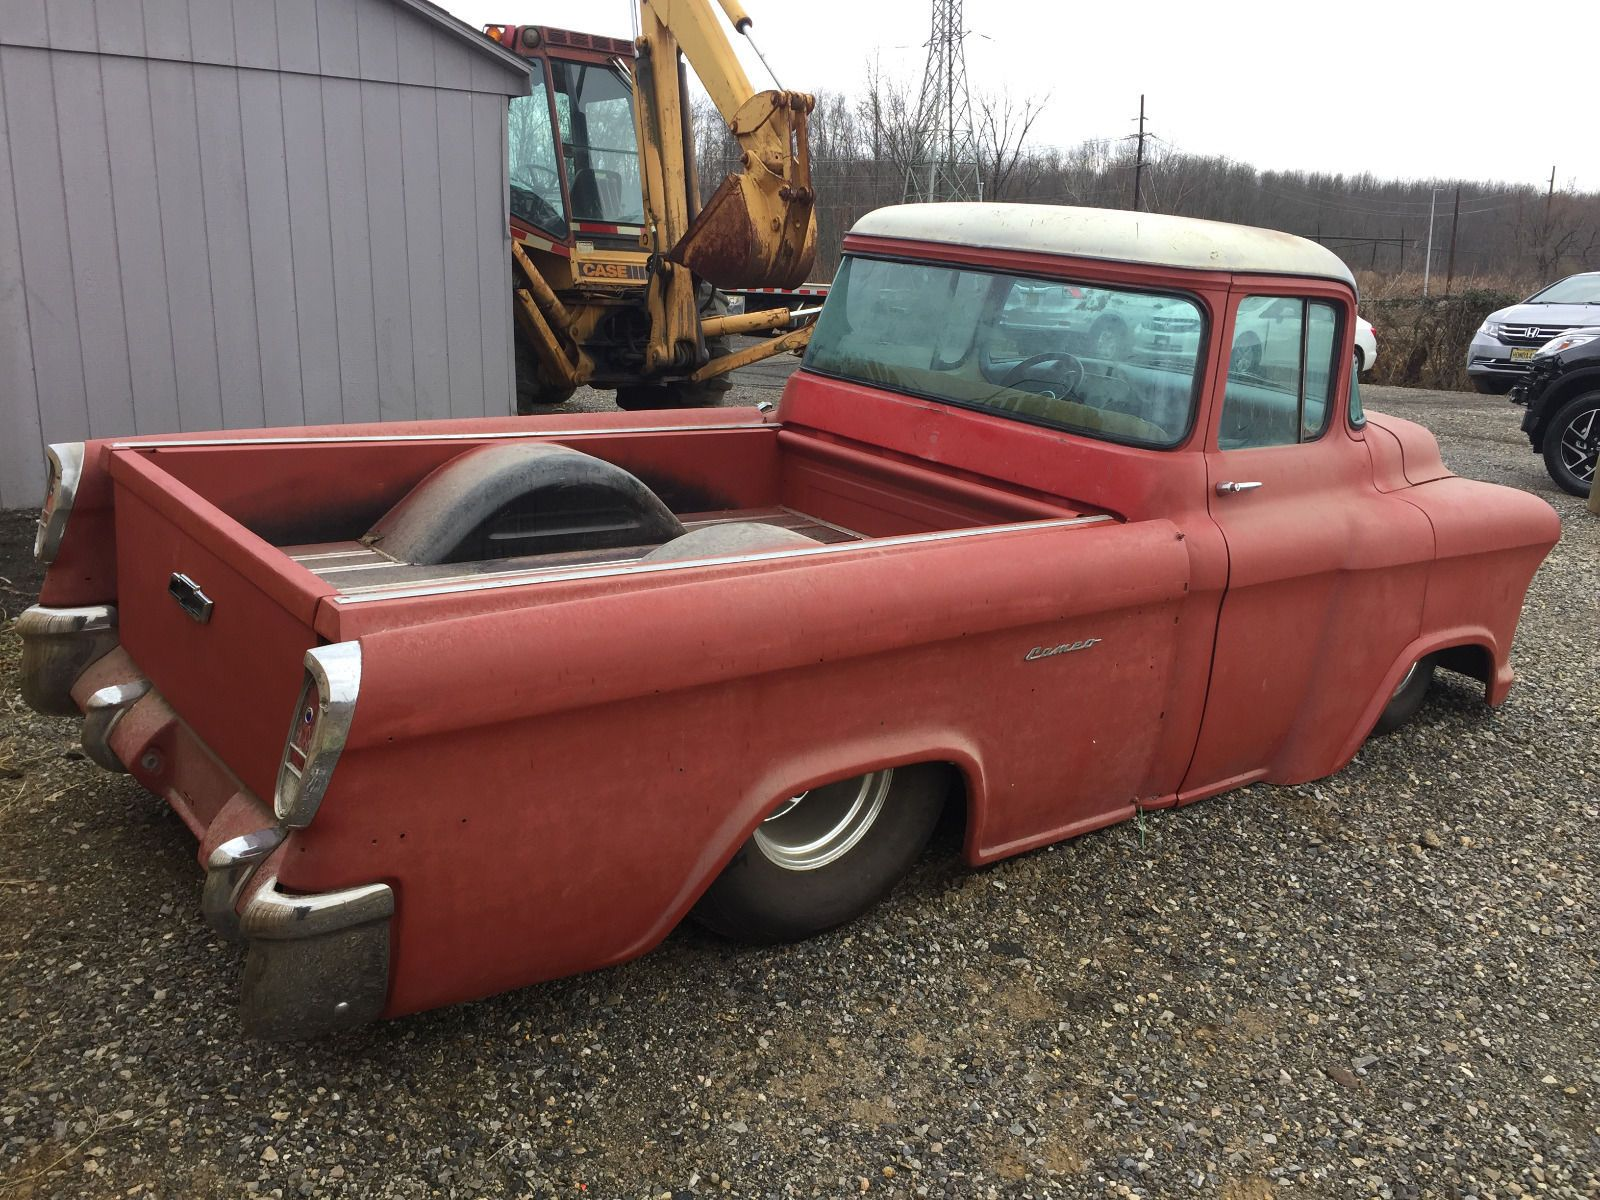 1956 Chevrolet Other Pickups Cameo   Chevrolet, Motor car and Gm trucks